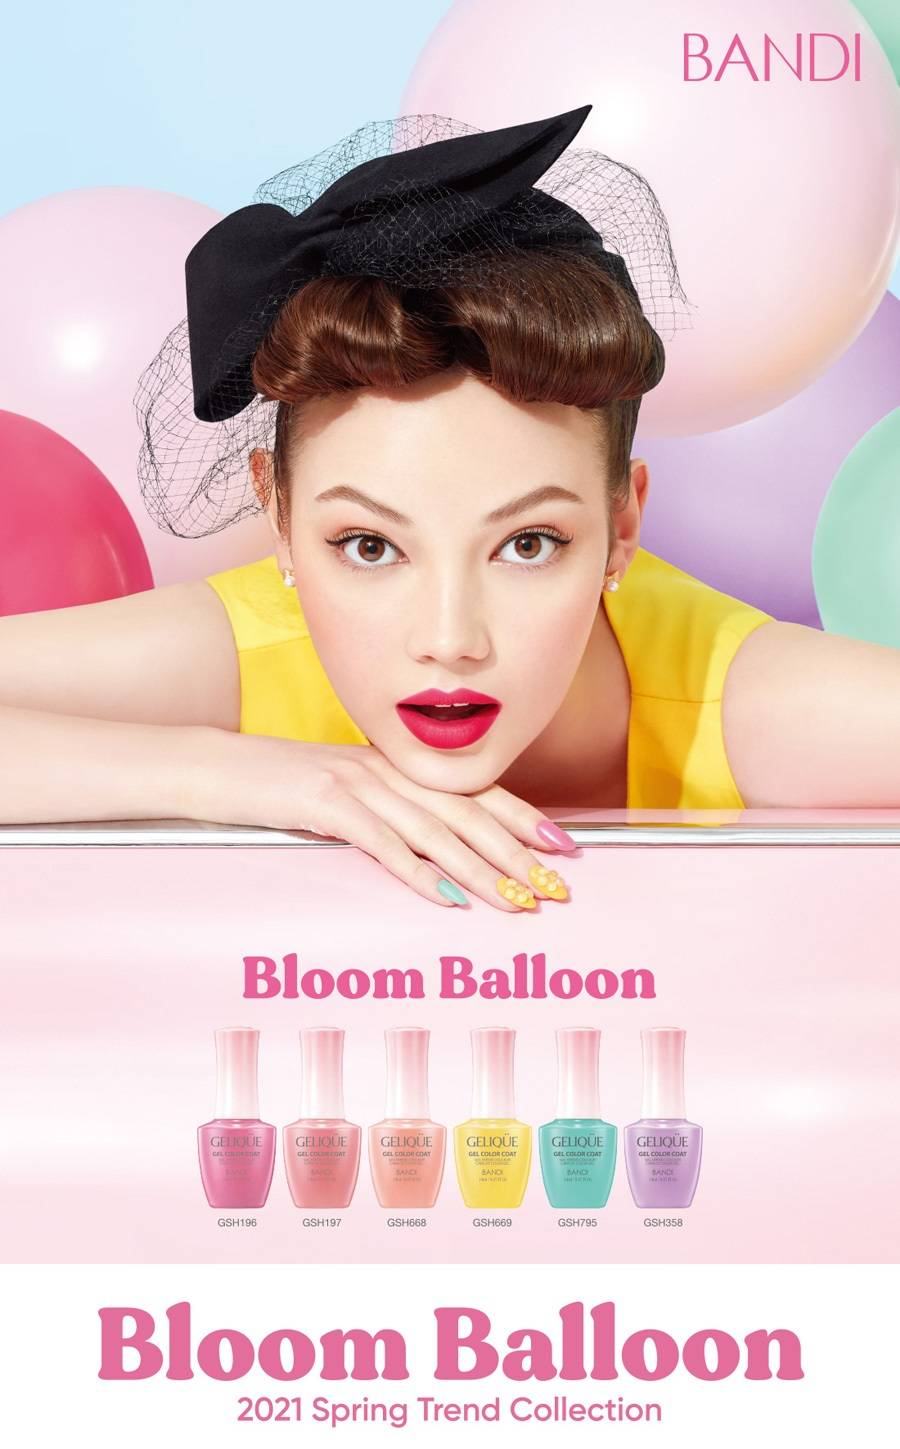 Bandi 2021 Spring Trend - Bloom Balloon